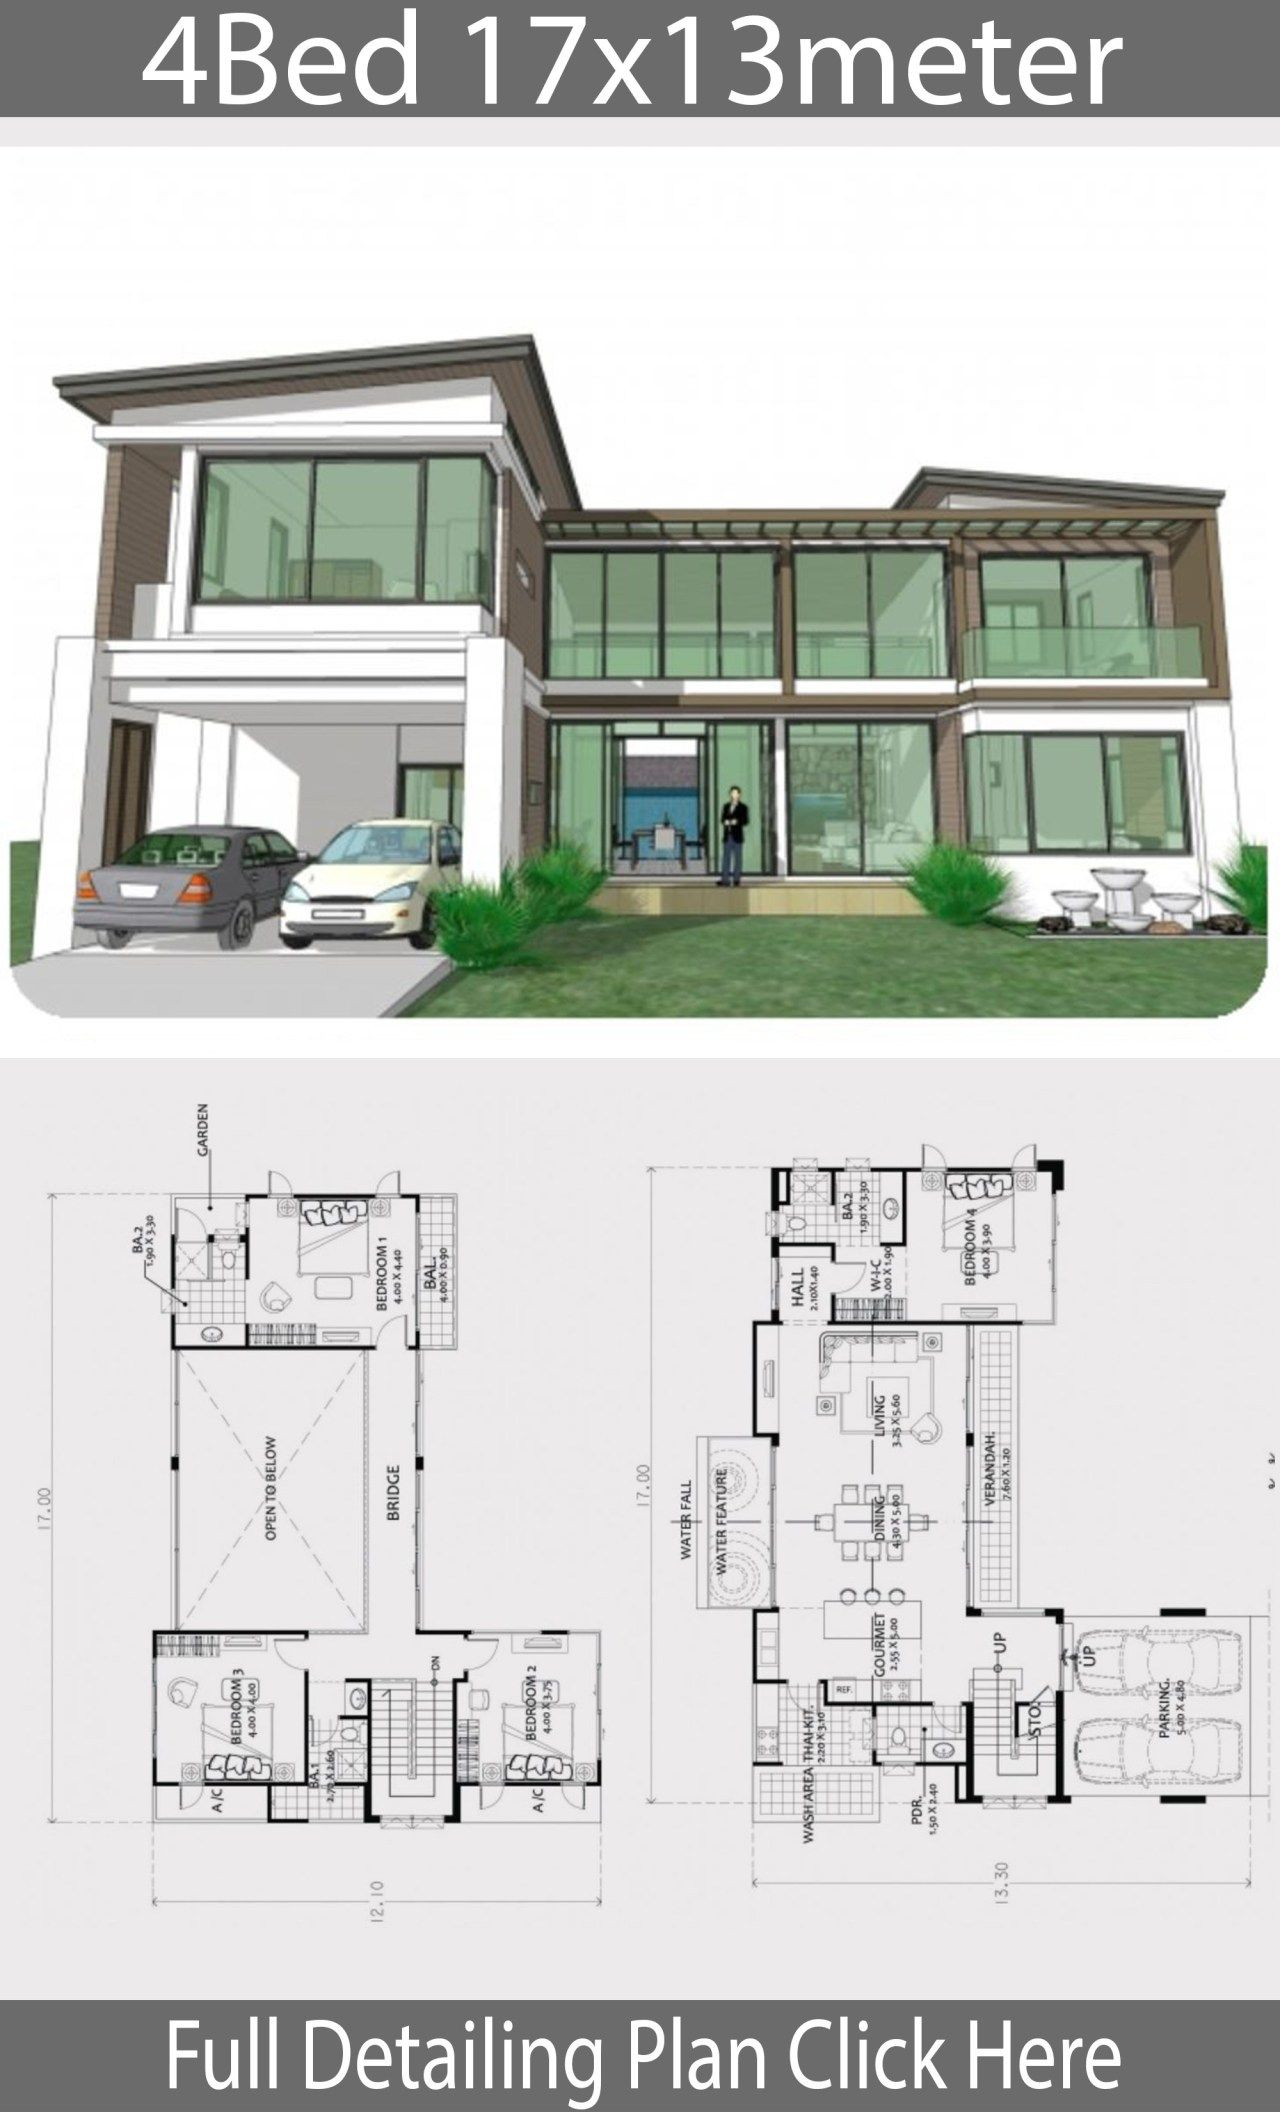 Home Design Plan 17x13m With 4 Bedrooms Home Ideas Beautiful House Plans Home Design Plan House Designs Exterior